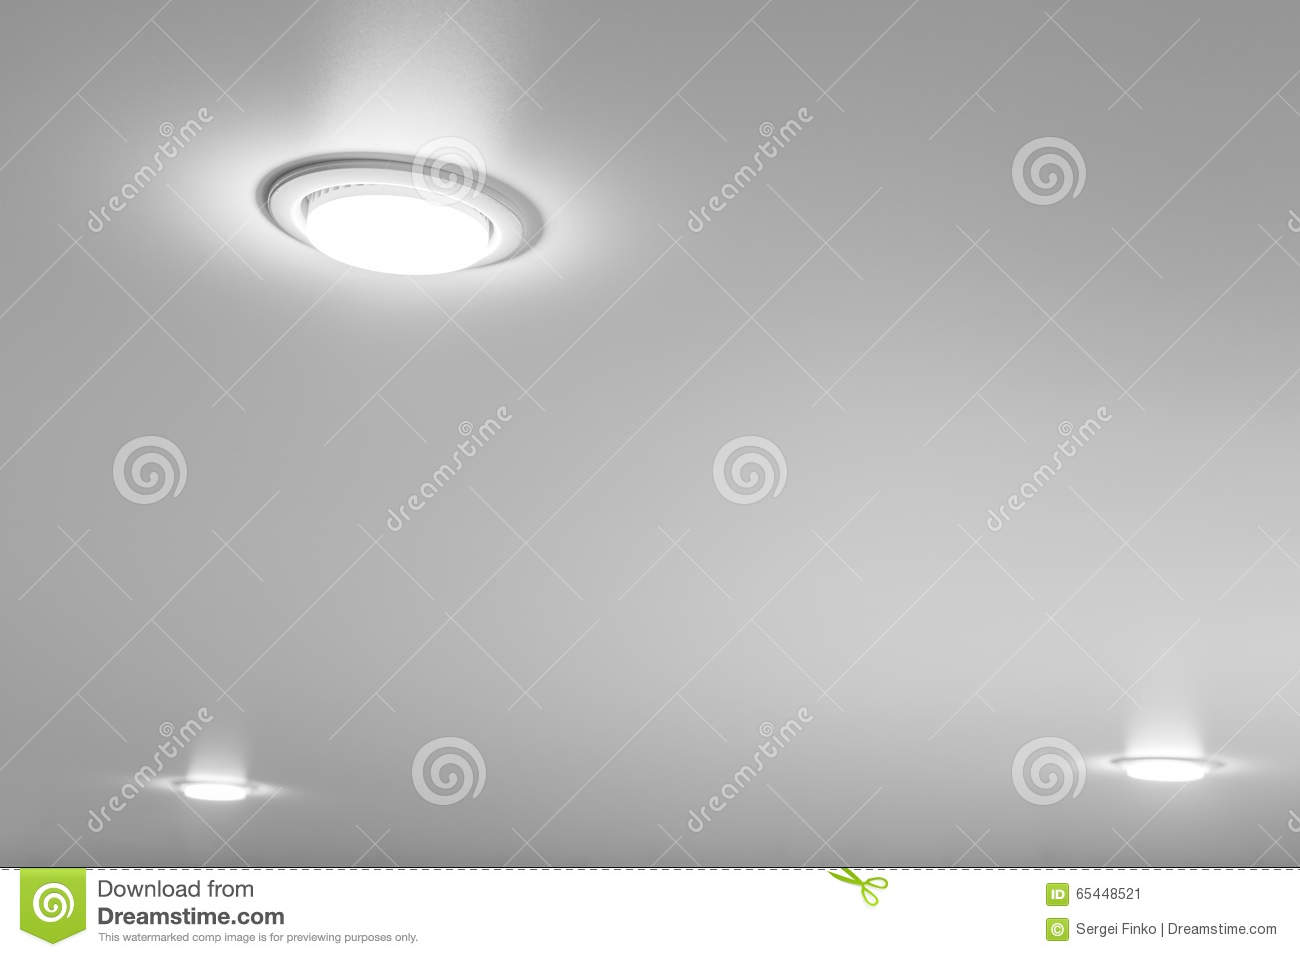 Ceiling Light Closeup Stock Image Of Fixture Installing Overhead Wiring Download 65448521